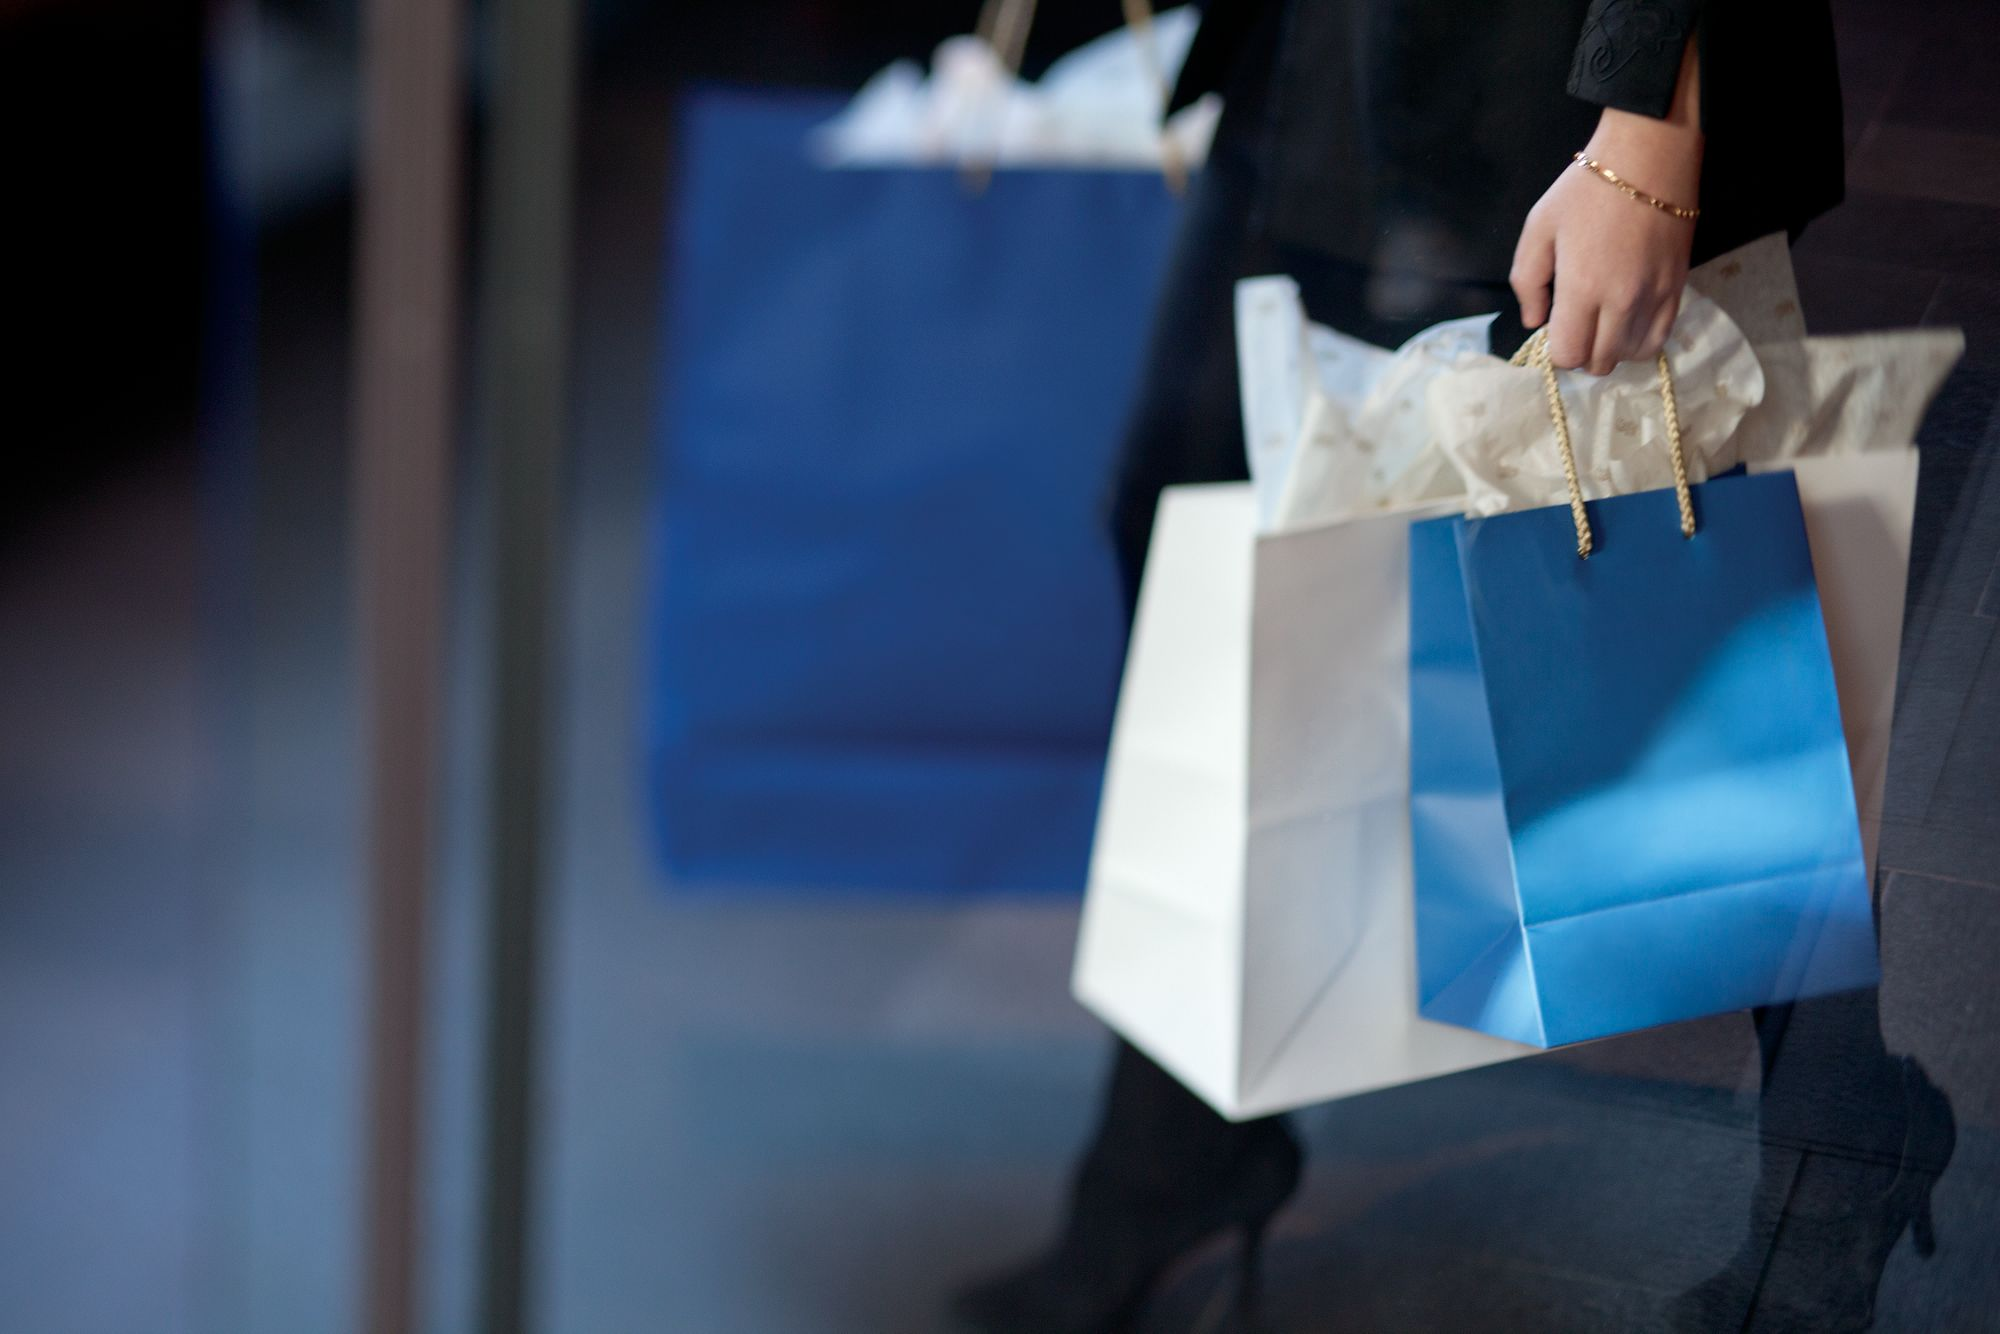 Lower half of a woman in a dark suit and heels carrying blue and white shopping bags